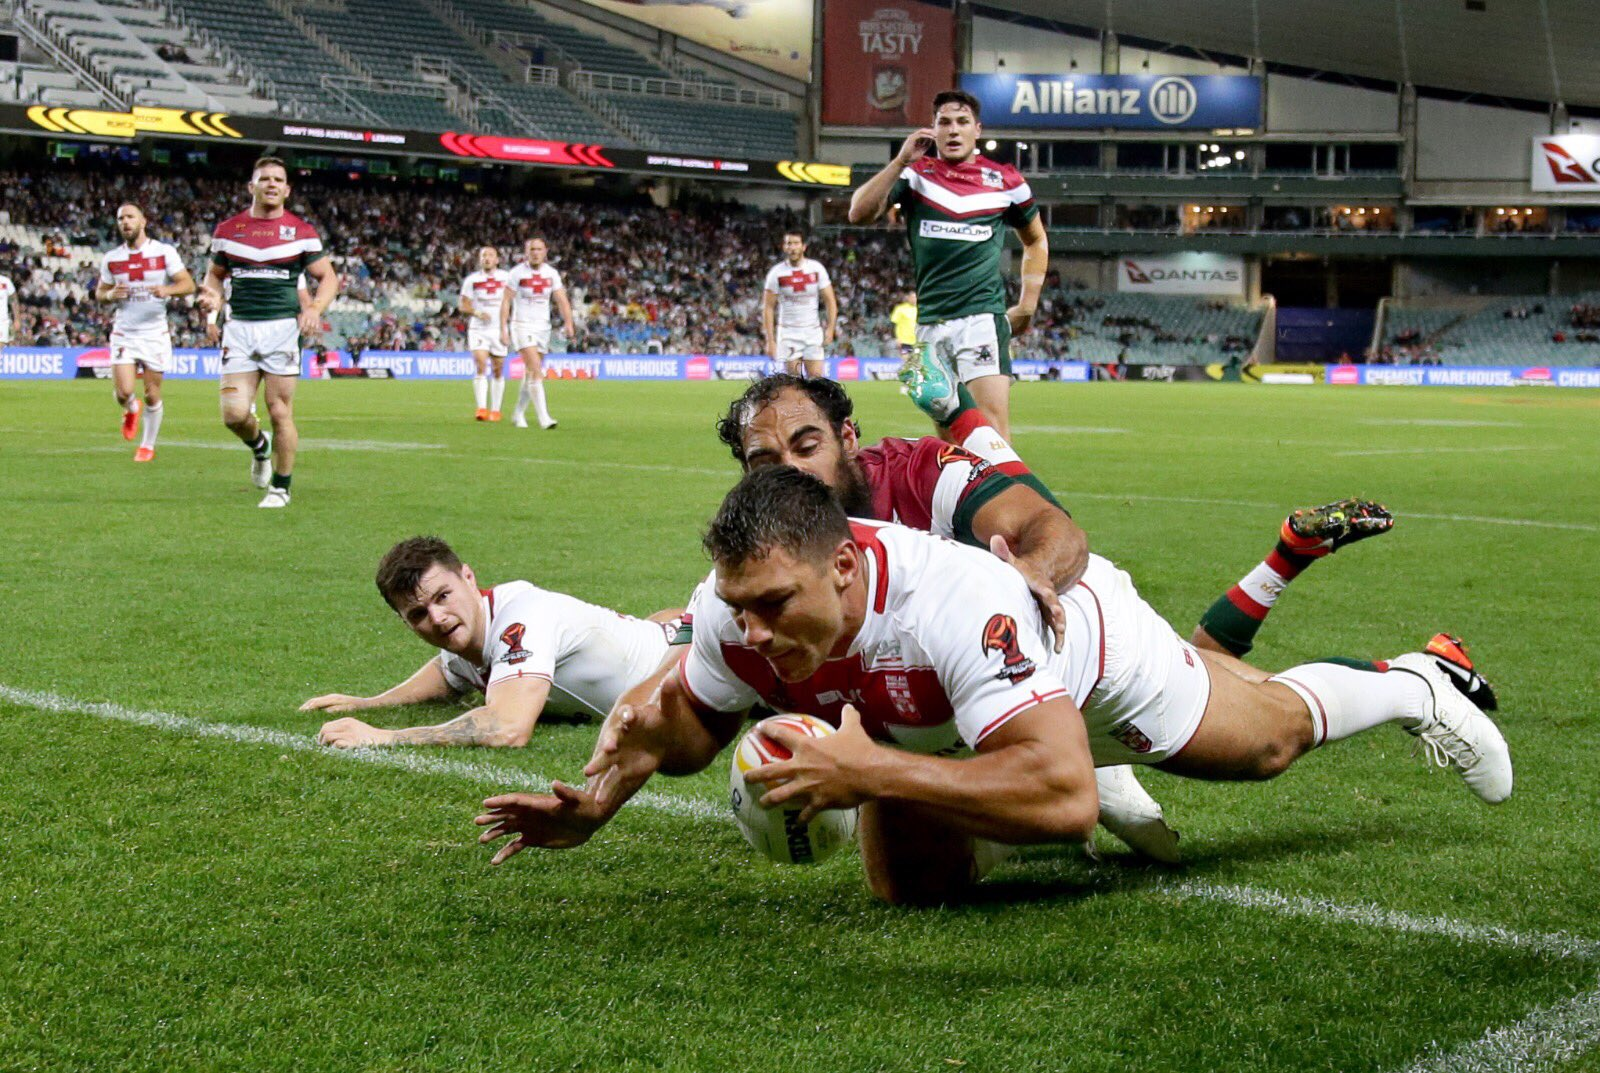 Andy Mannah twitter talk: fans react to england beating lebanon | love